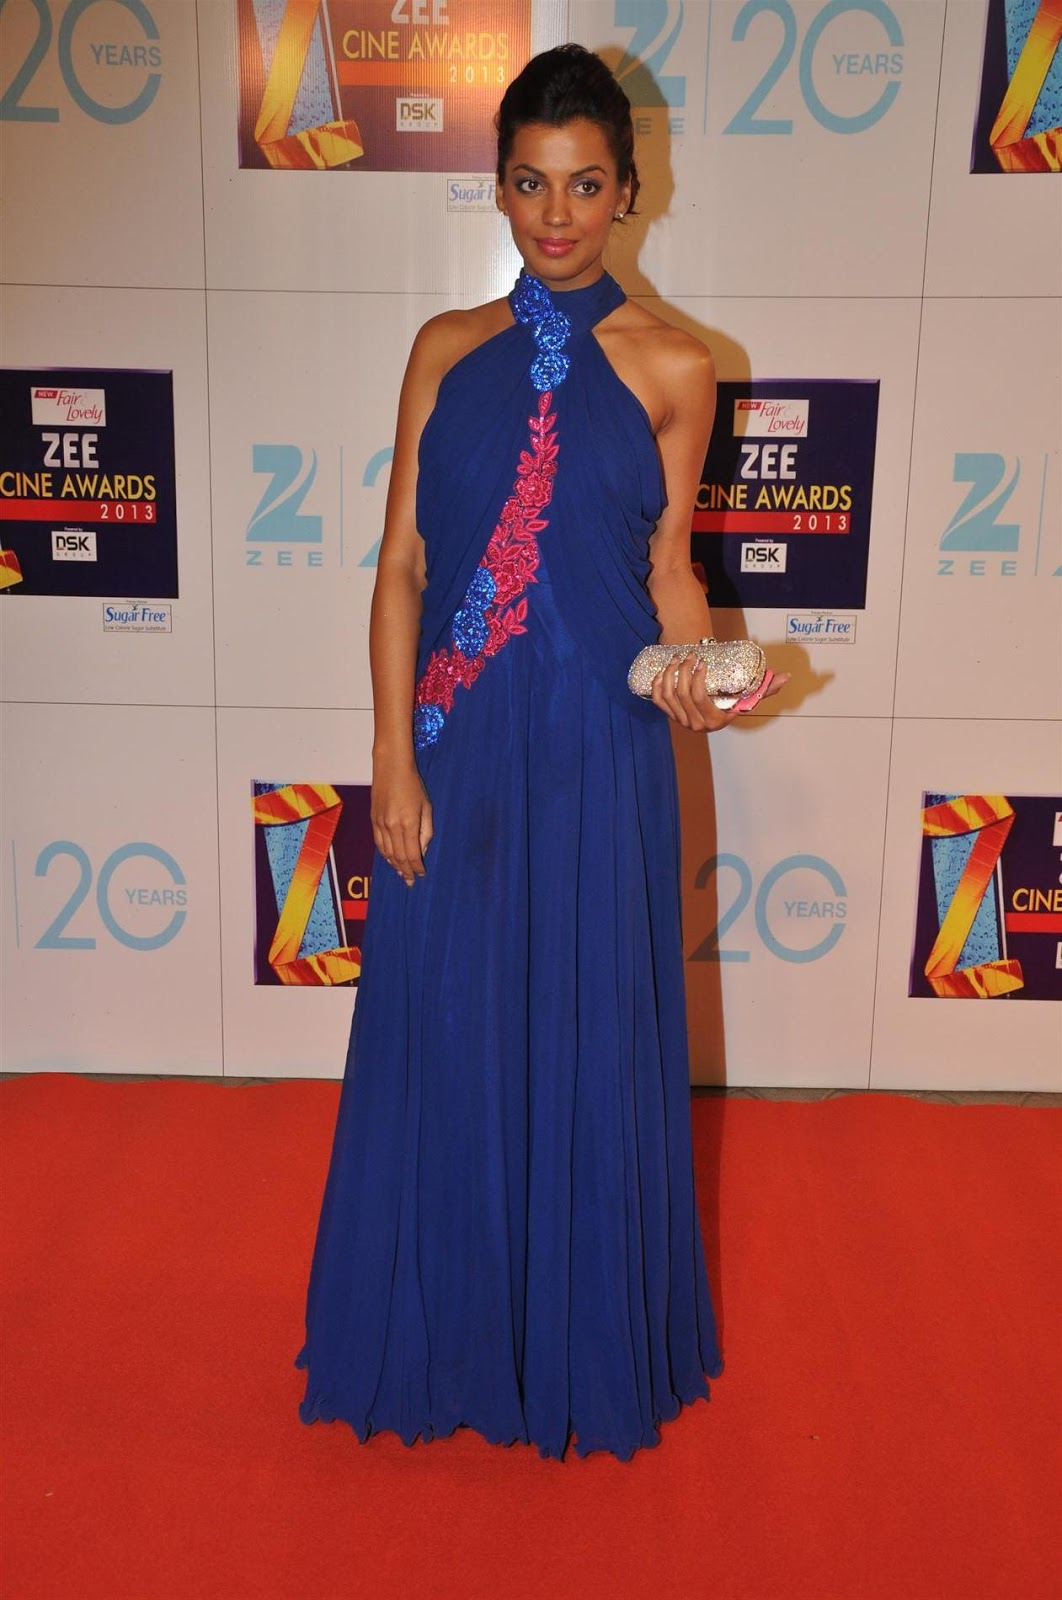 Sophie chaudhary, huma qureshi, yami gautam and other at zee cine awards 2013.